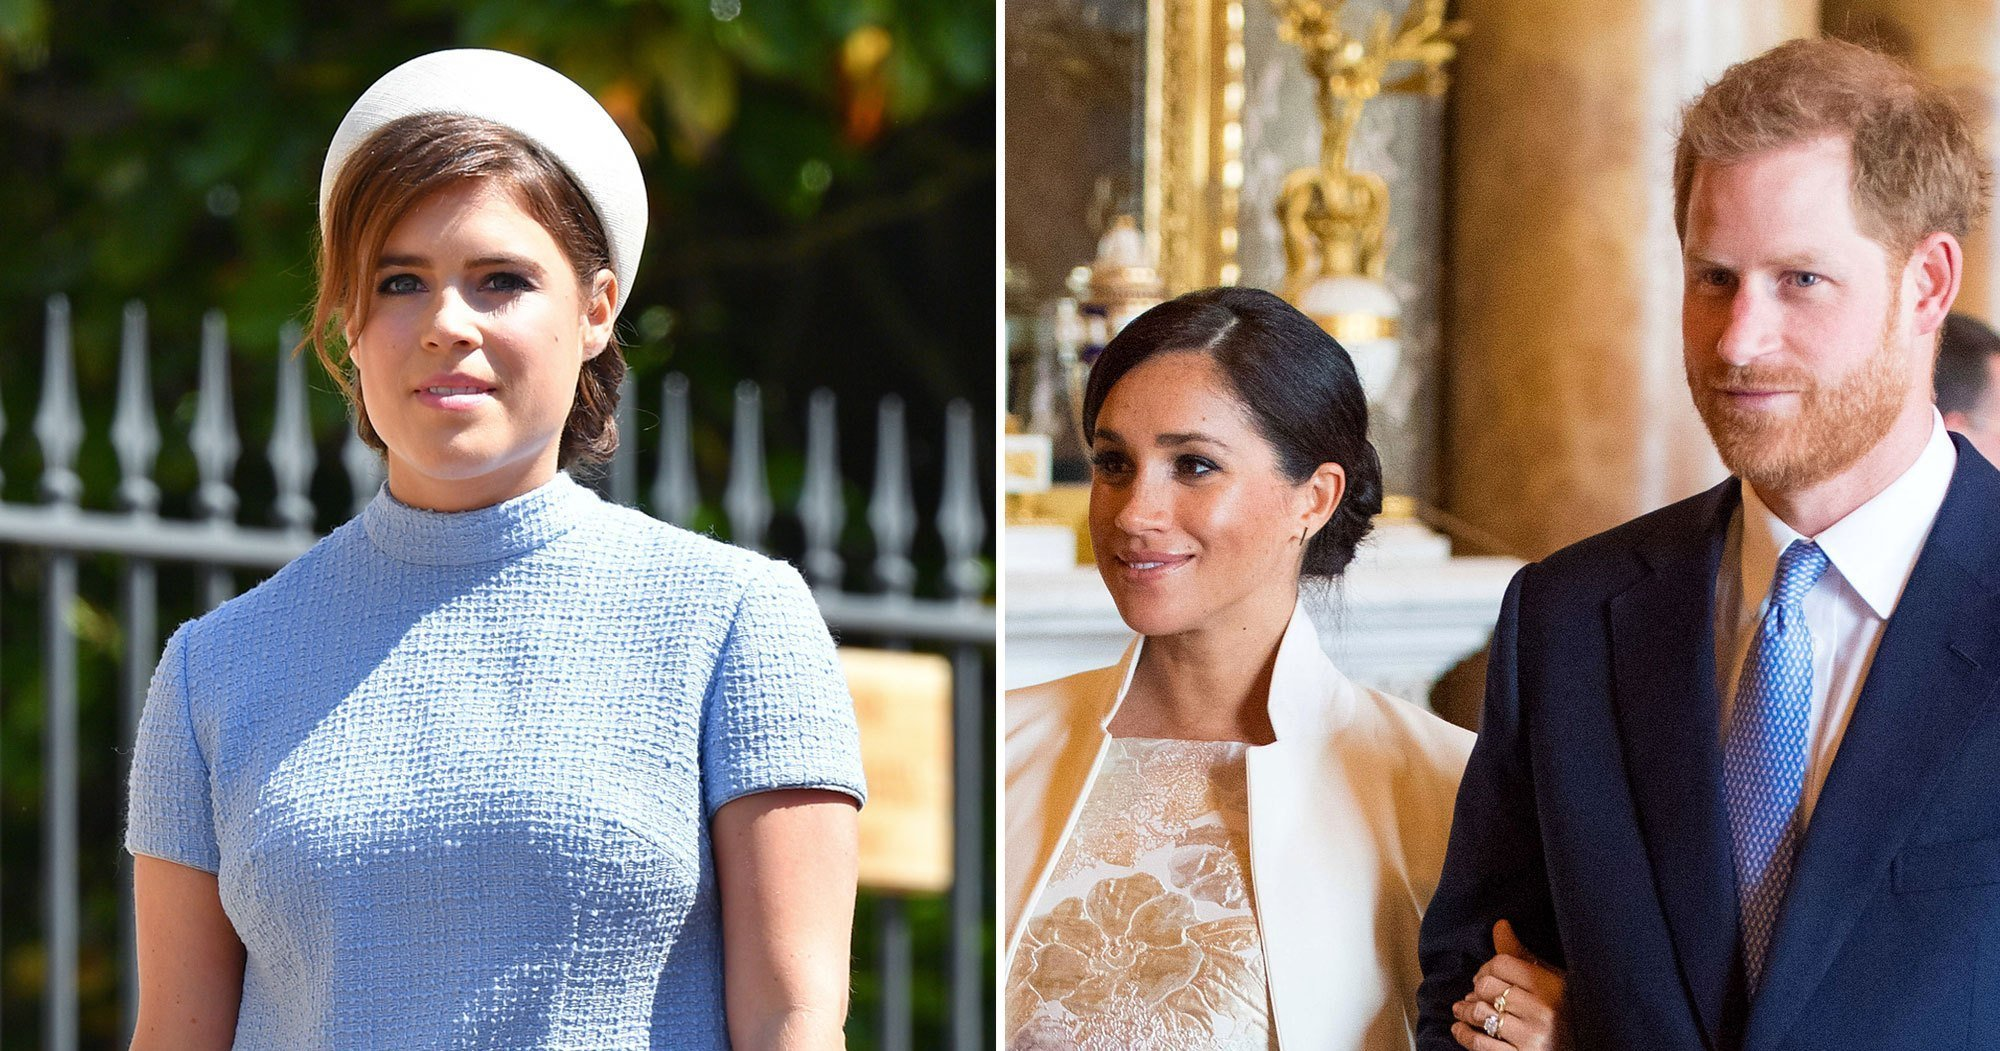 Family Affair! Eugenie Welcomes 'Cousins' Harry and Meghan to Instagram